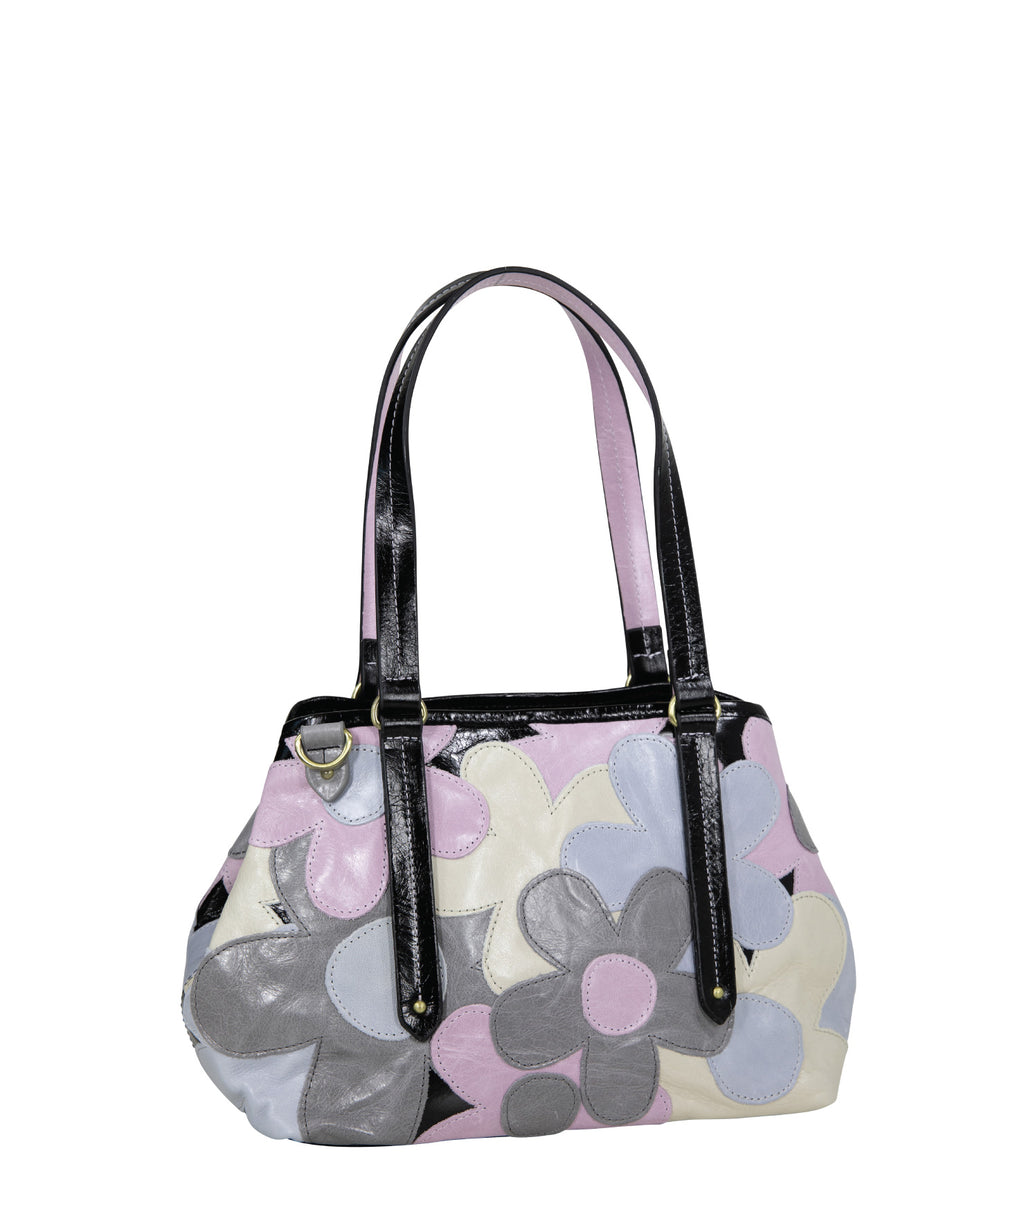 CARLOTA MINI Leather Tote - Garden of Eden